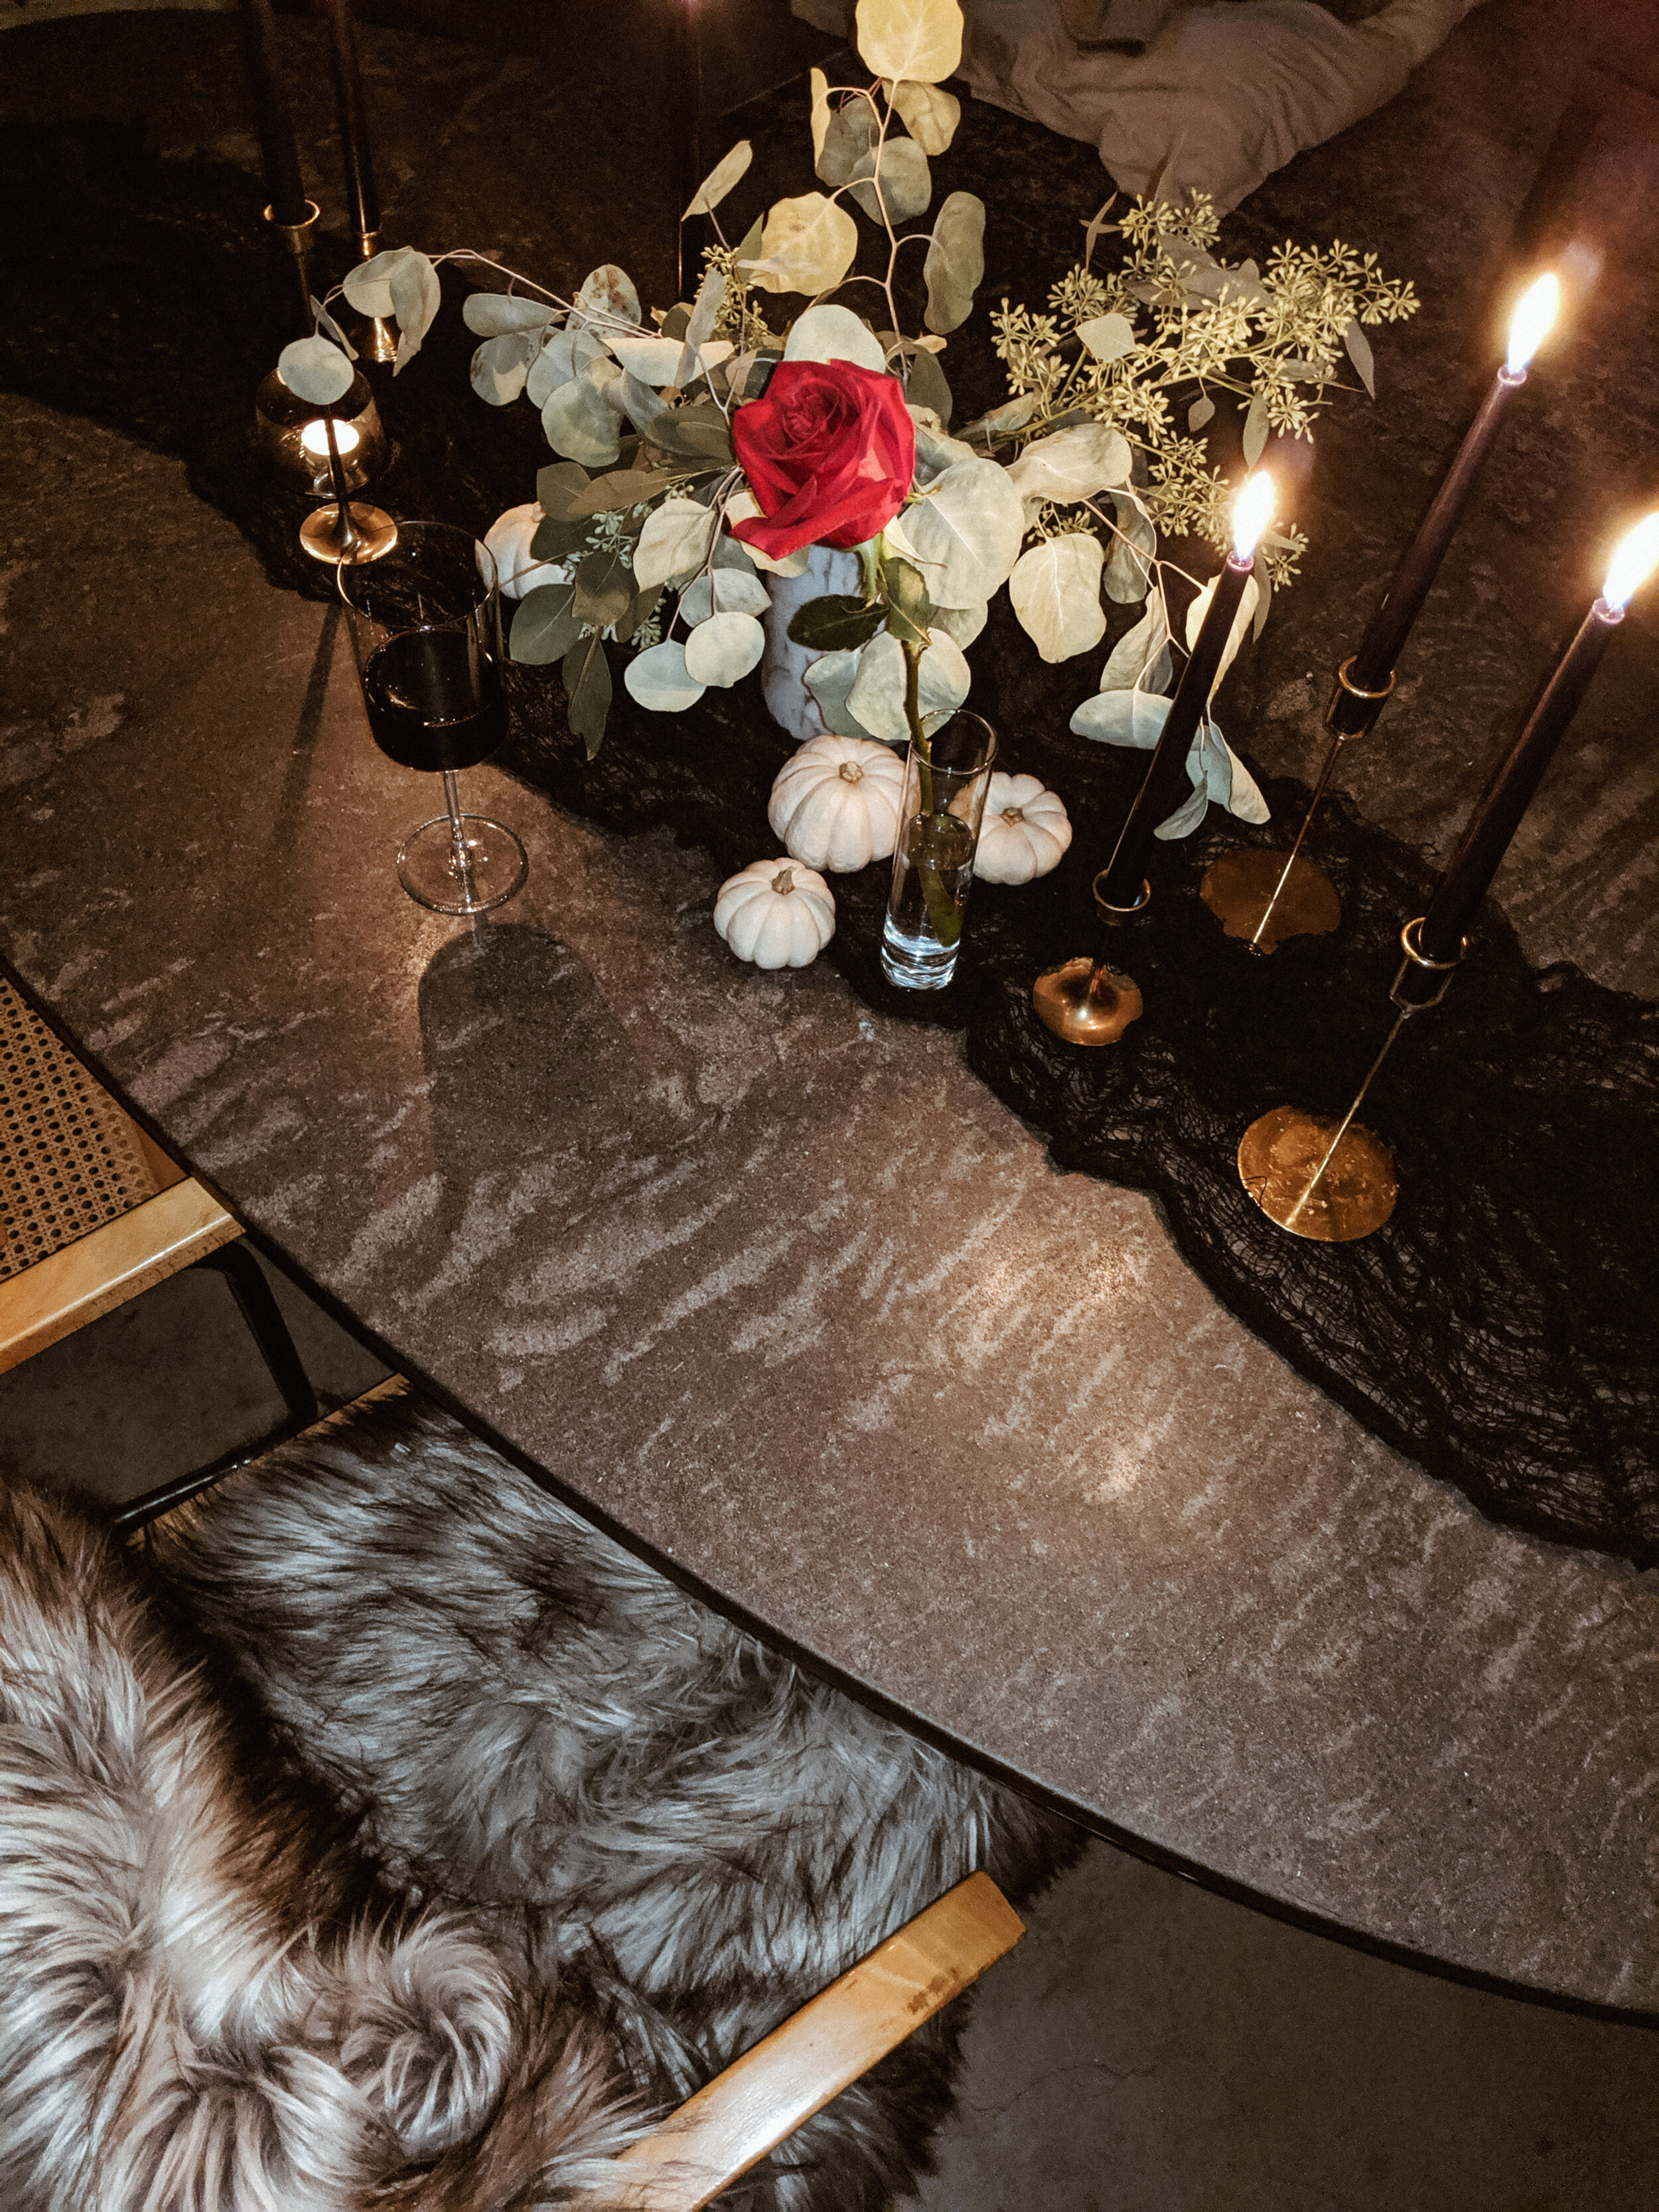 Always Looking For The Magic - Nicole Toland - Spooky Chic Halloween Styling